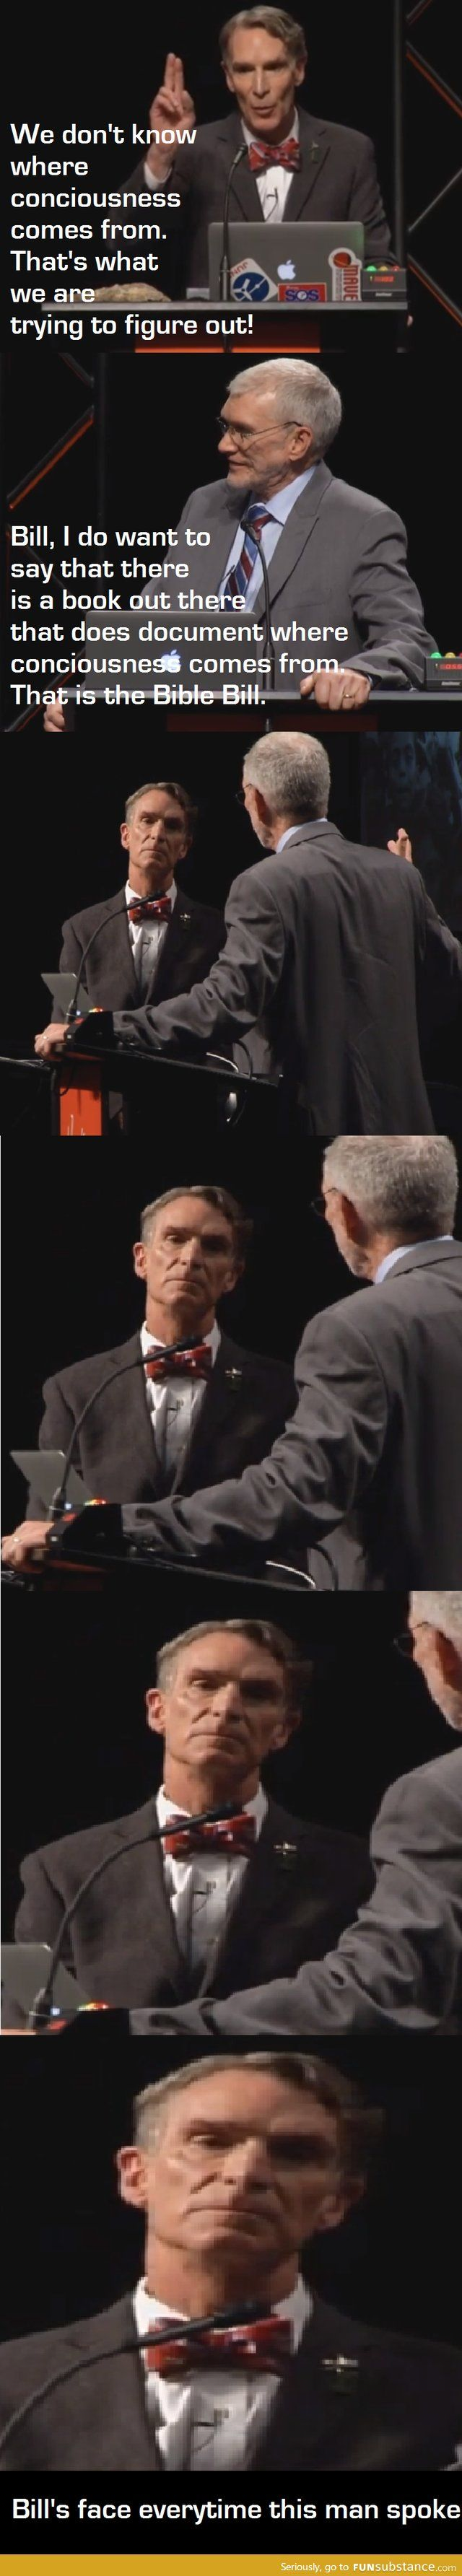 Love me some bill nye the science guy.